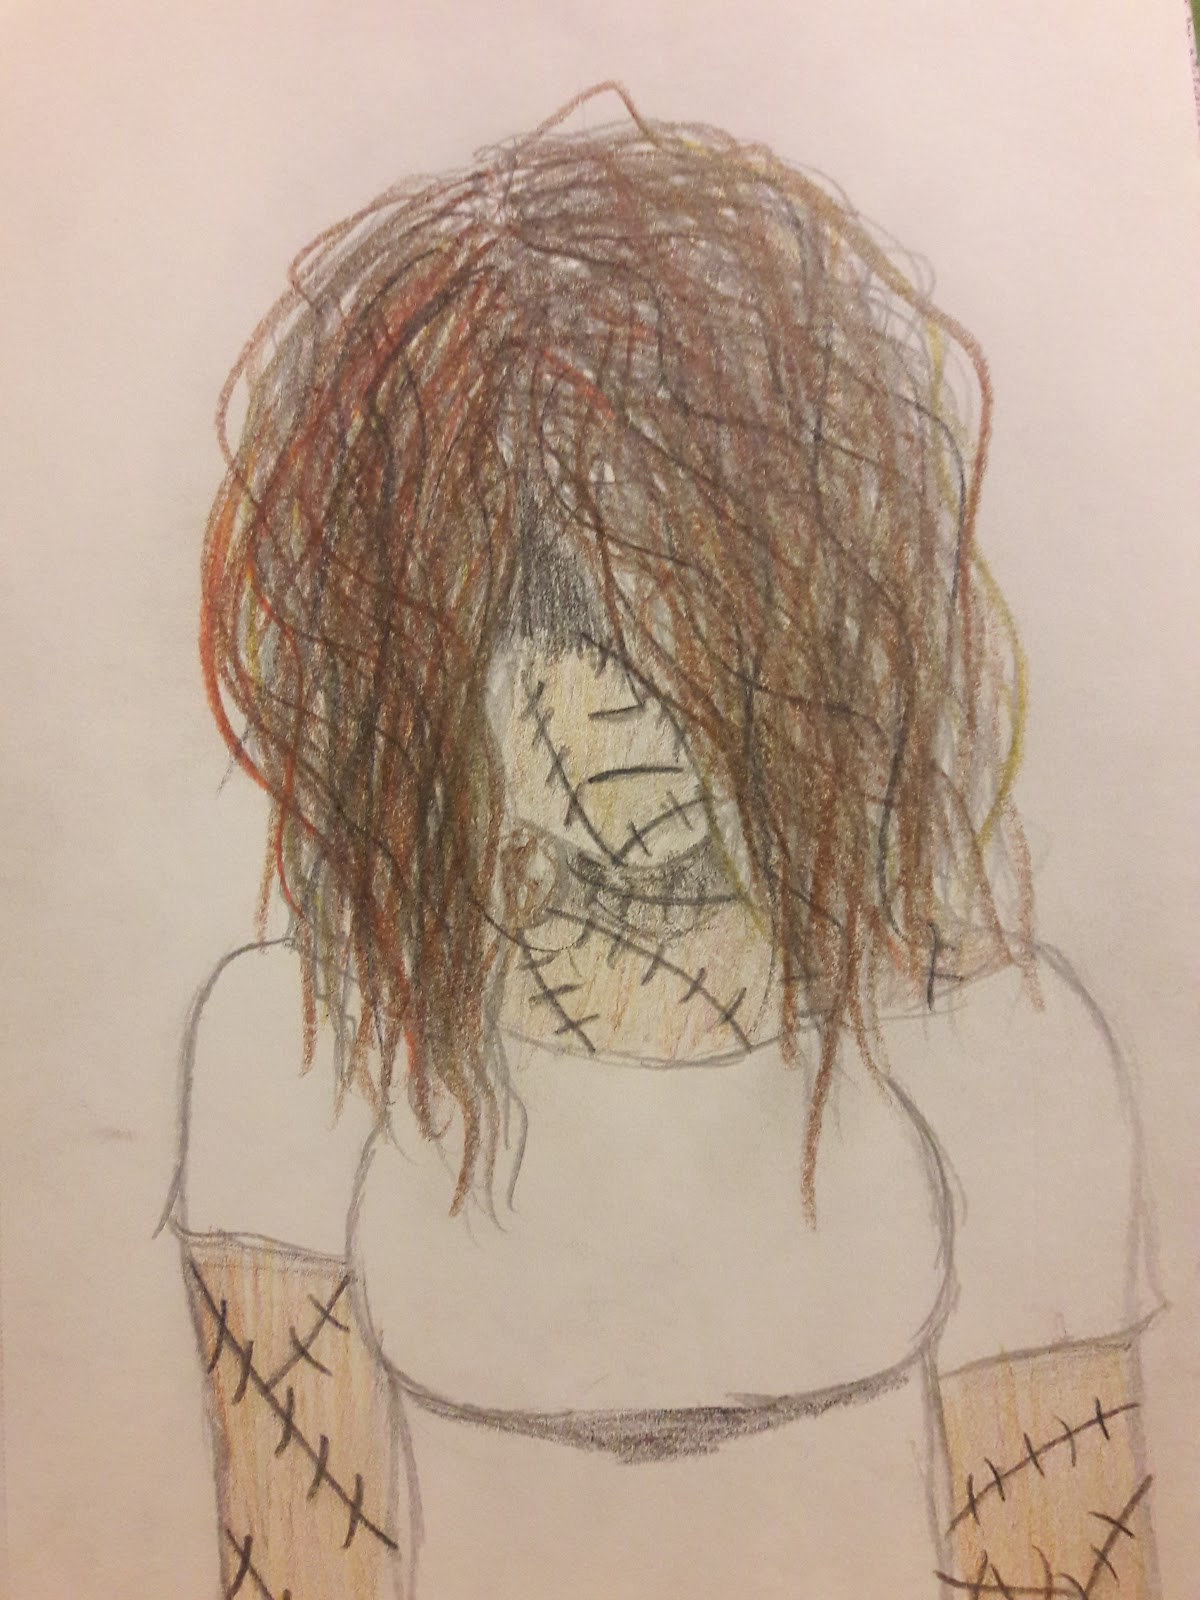 woman with scars and messy hair